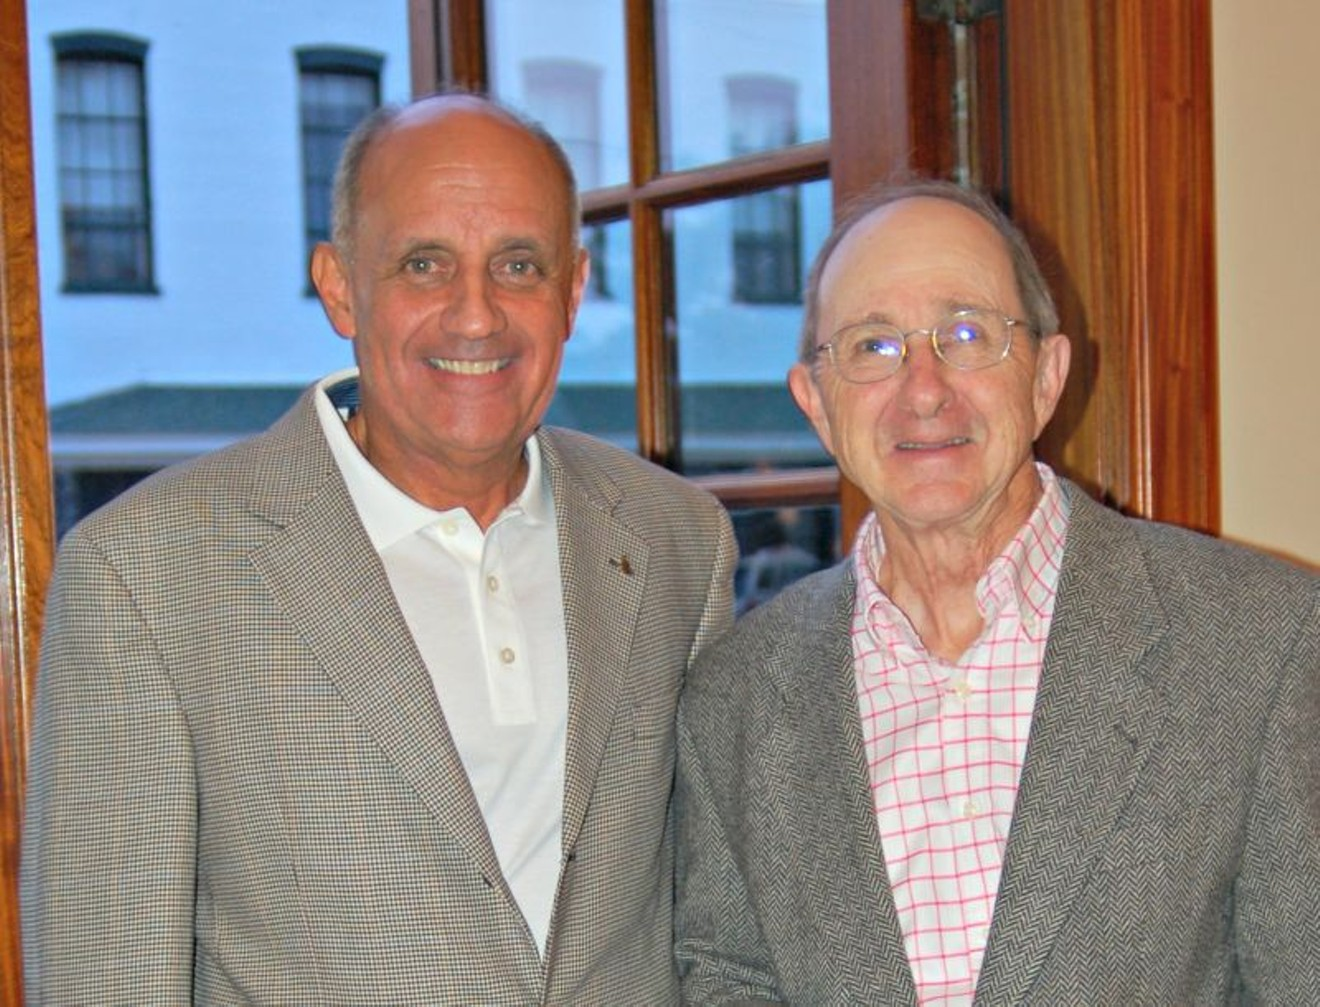 Charles H. Morris (right) with Canyon Ranch Institute President Richard H. Carmona, M.D., M.P.H., FACS, 17th U.S. Surgeon General.